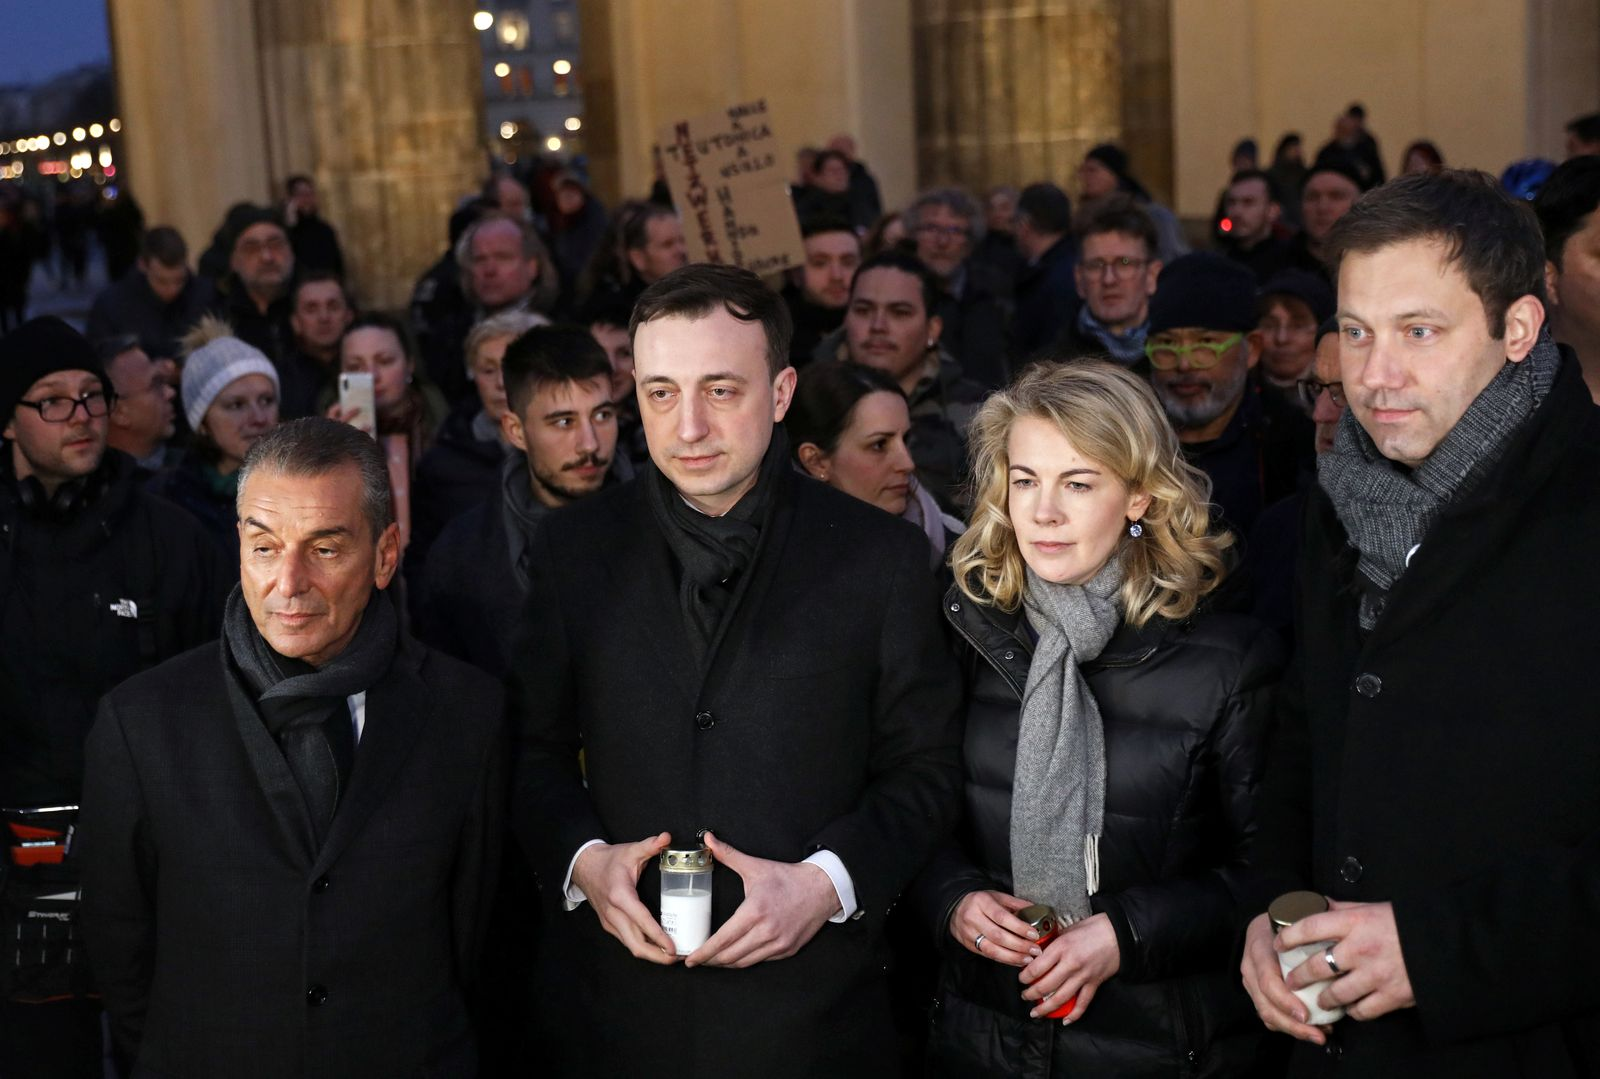 Vigil in Berlin for the victims of a shooting in the city of Hanau